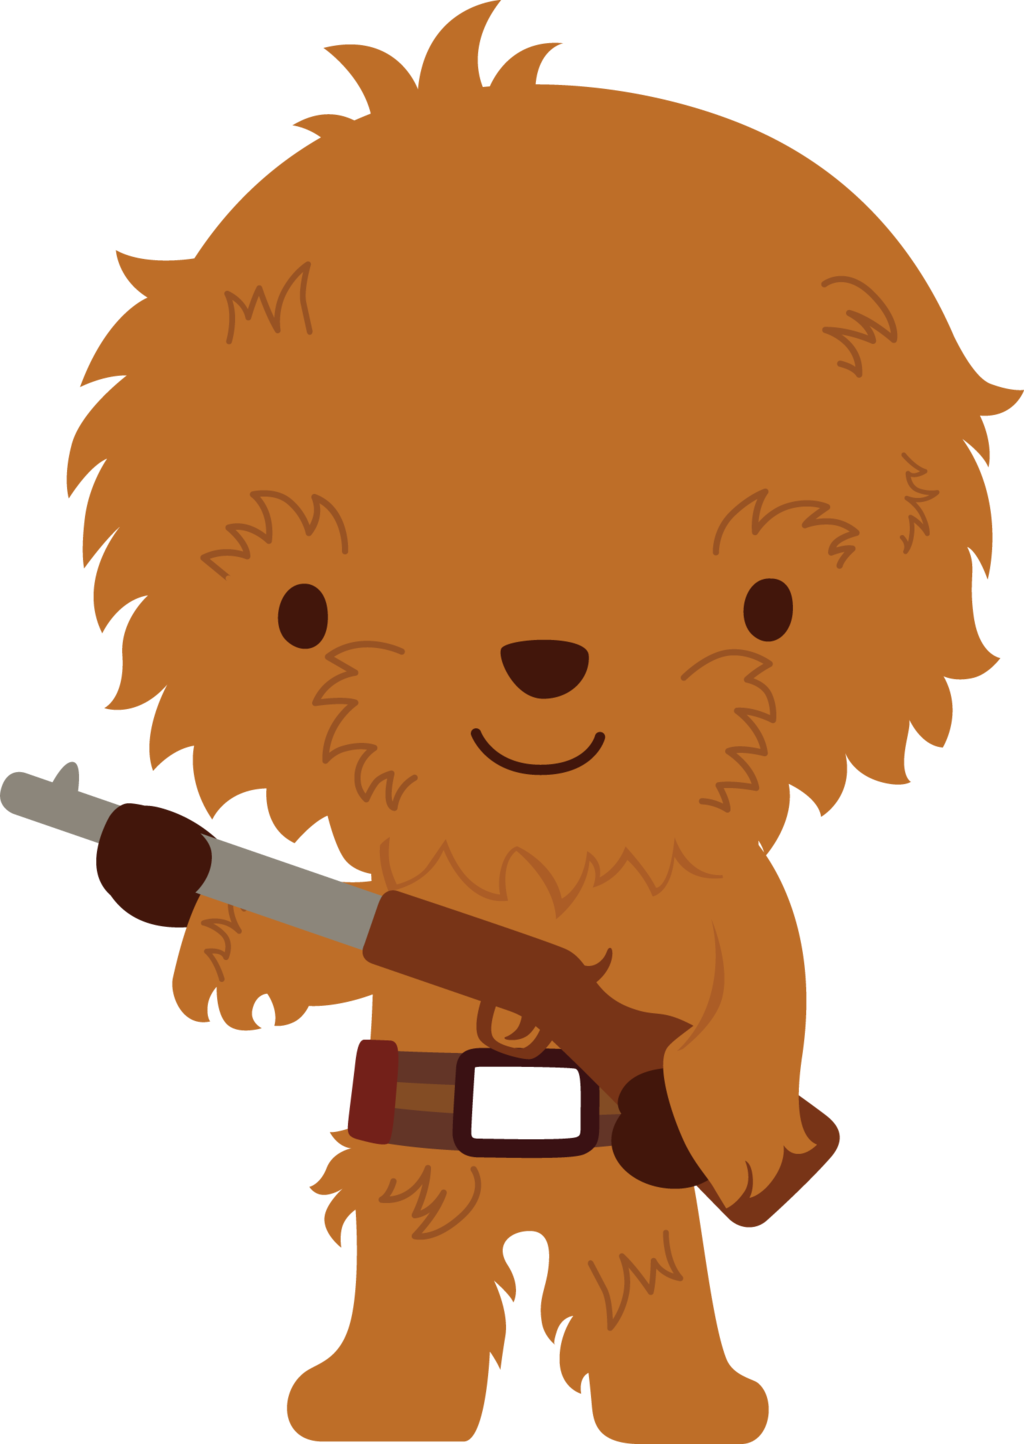 graphic free stock Wars clipart 1 character. Chewbacca by chrispix deviantart